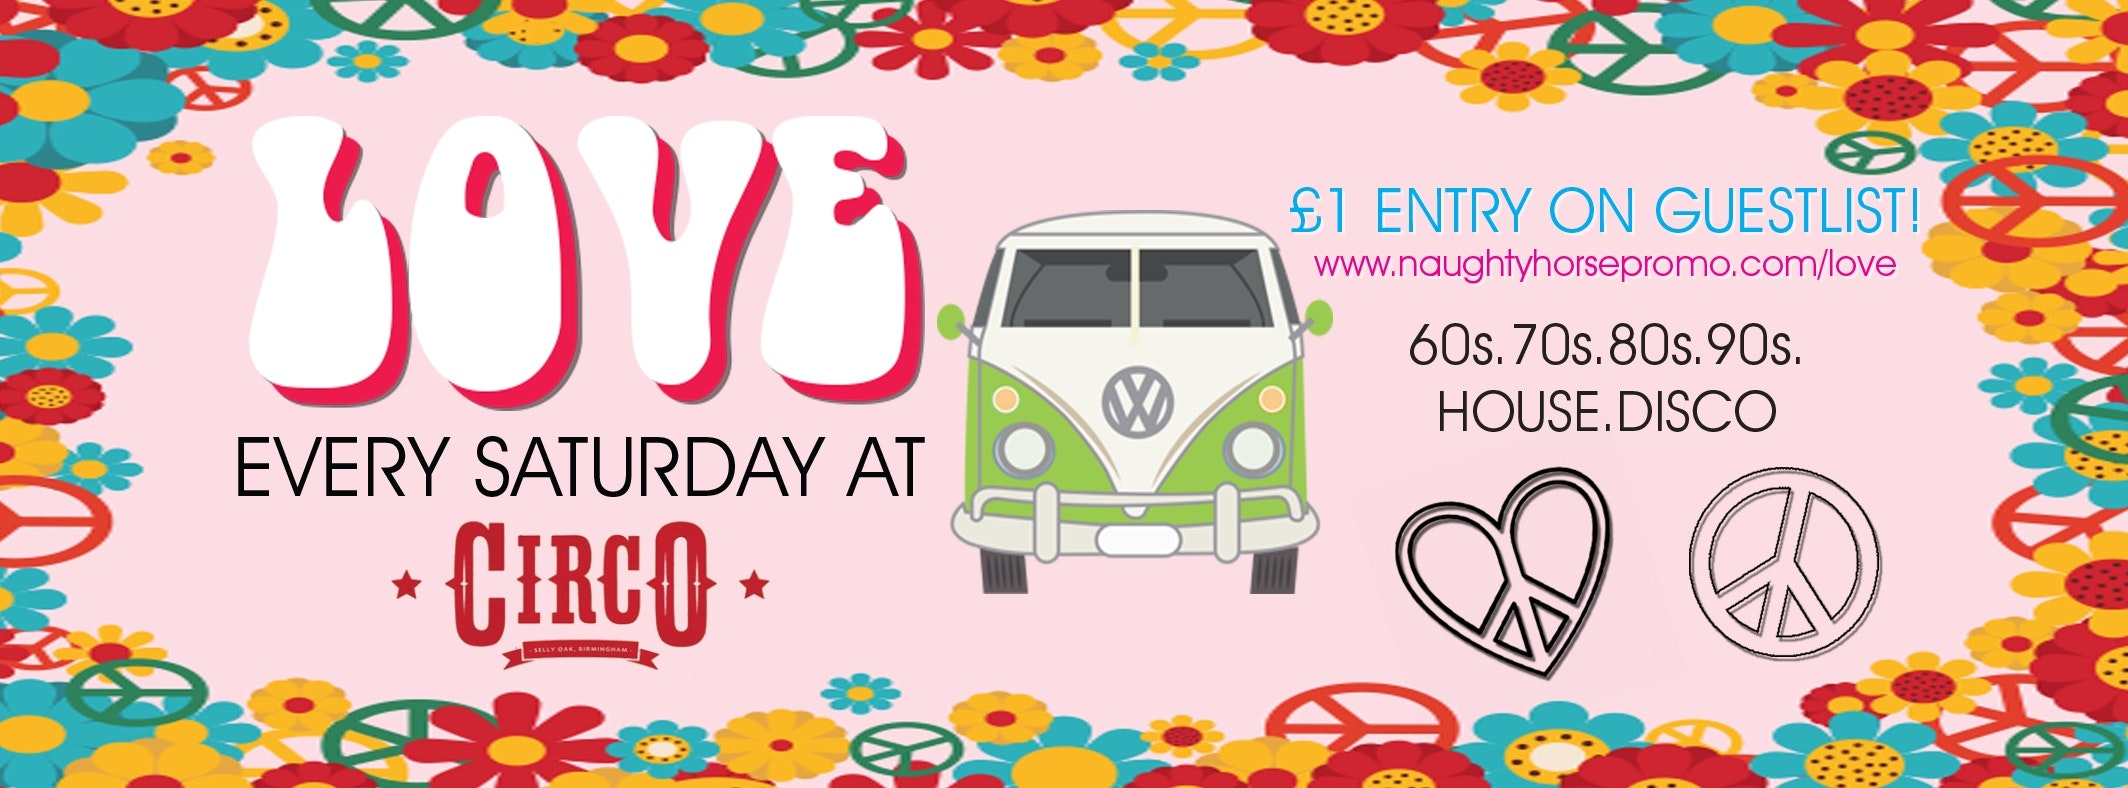 LOVE: Freshers part 2 – Saturdays at Circo (Selly Oak) – £1 Entry guestlist!